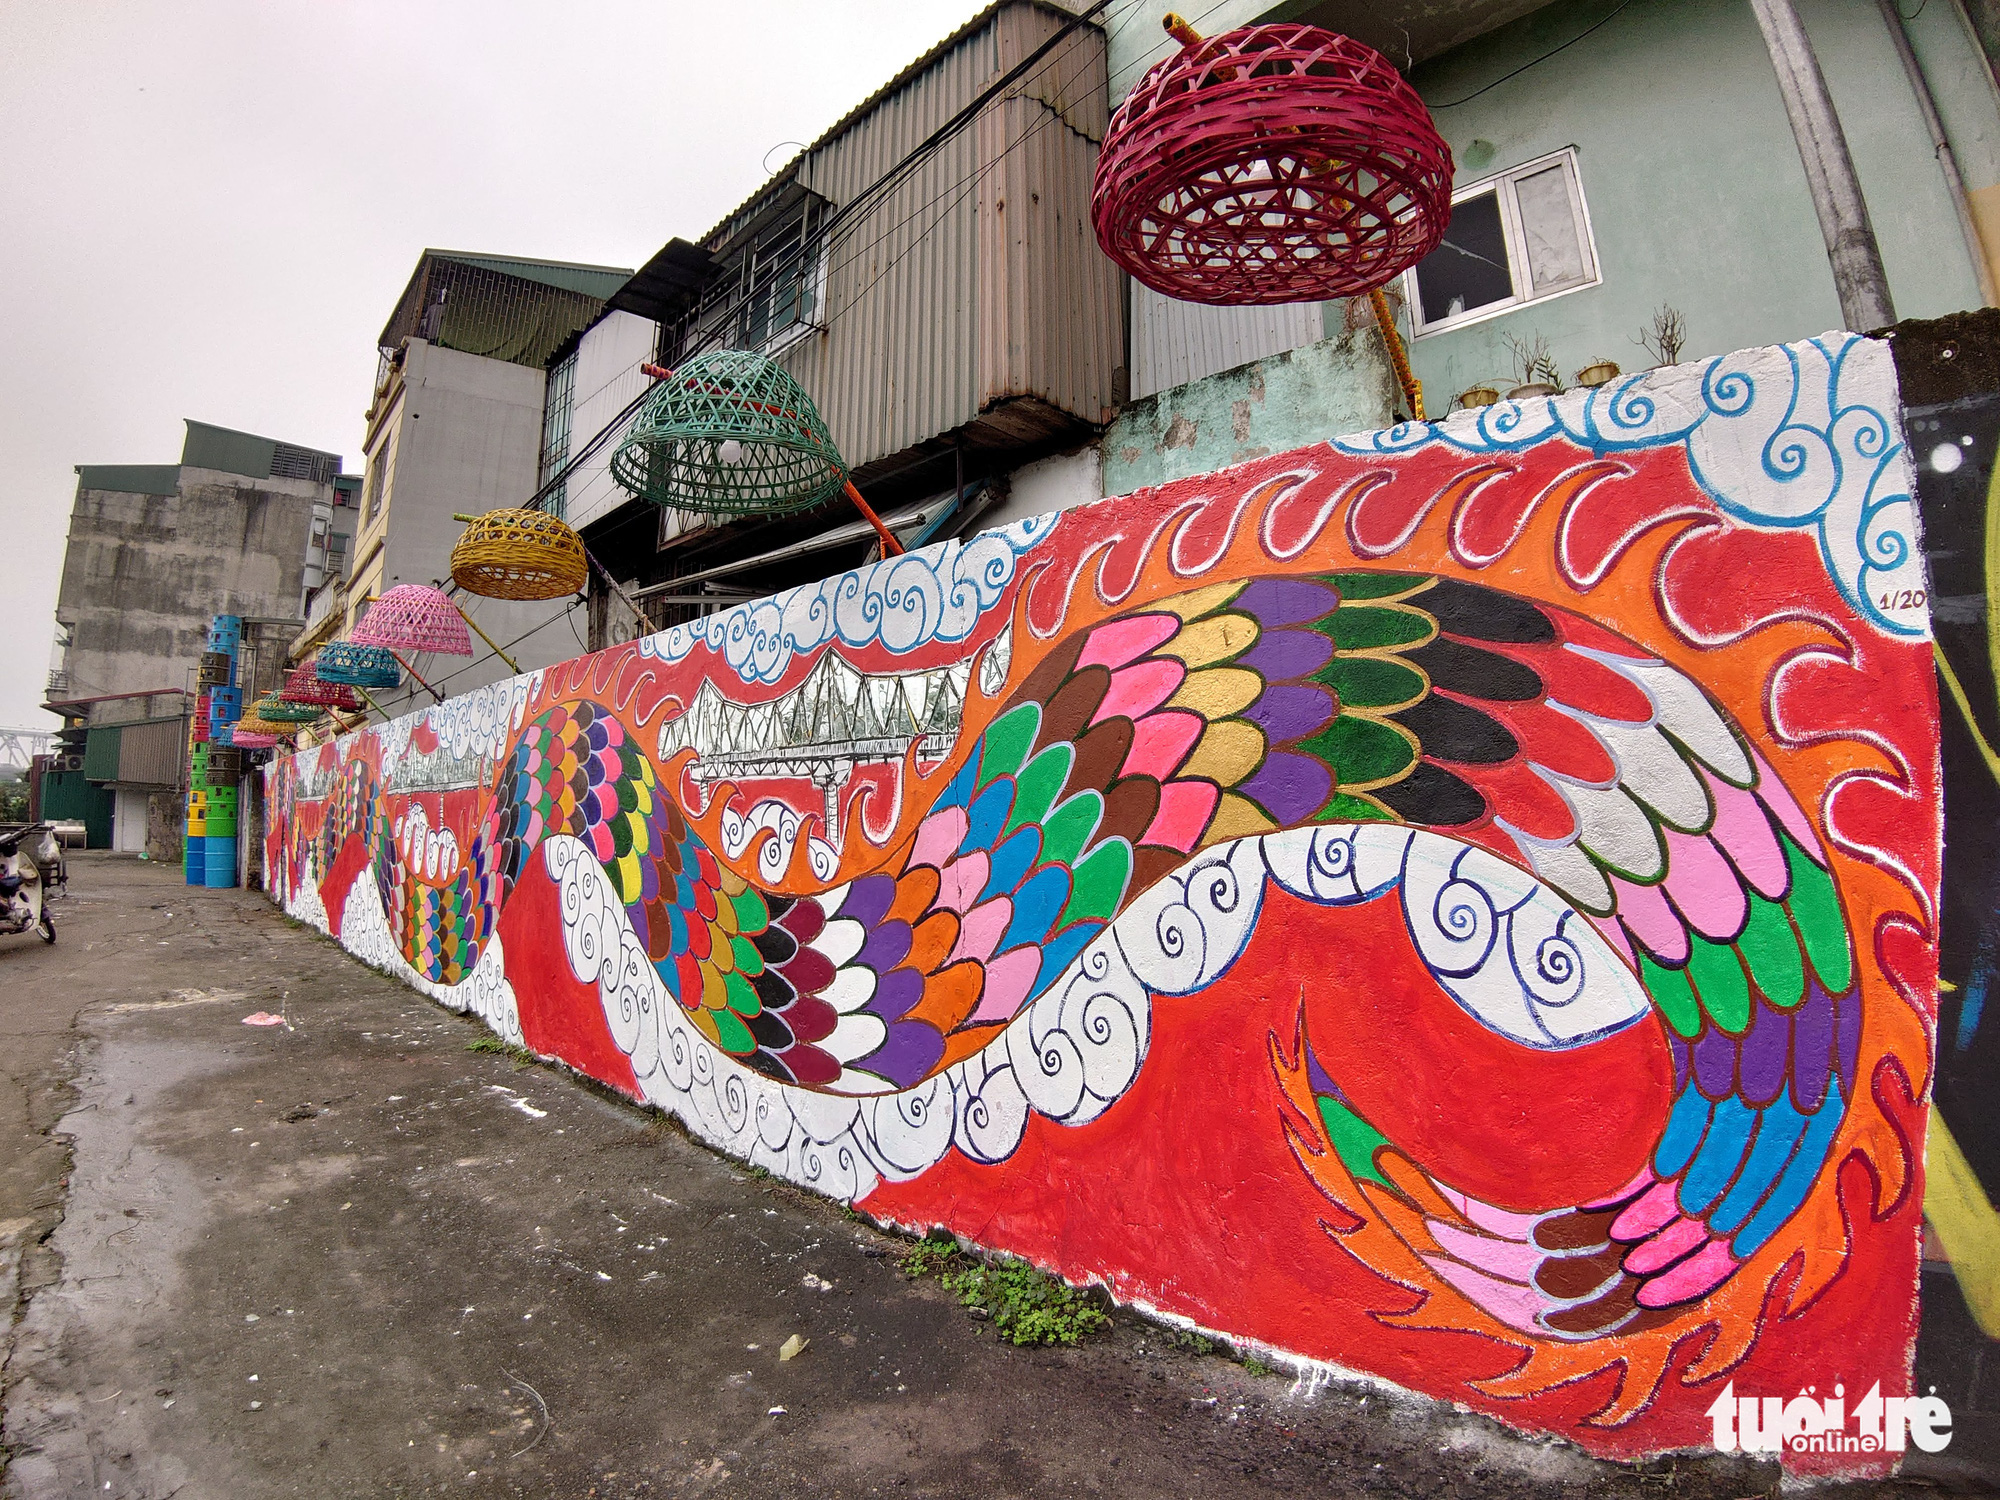 A walk to relive Hanoi's history in landfill-turned-art space